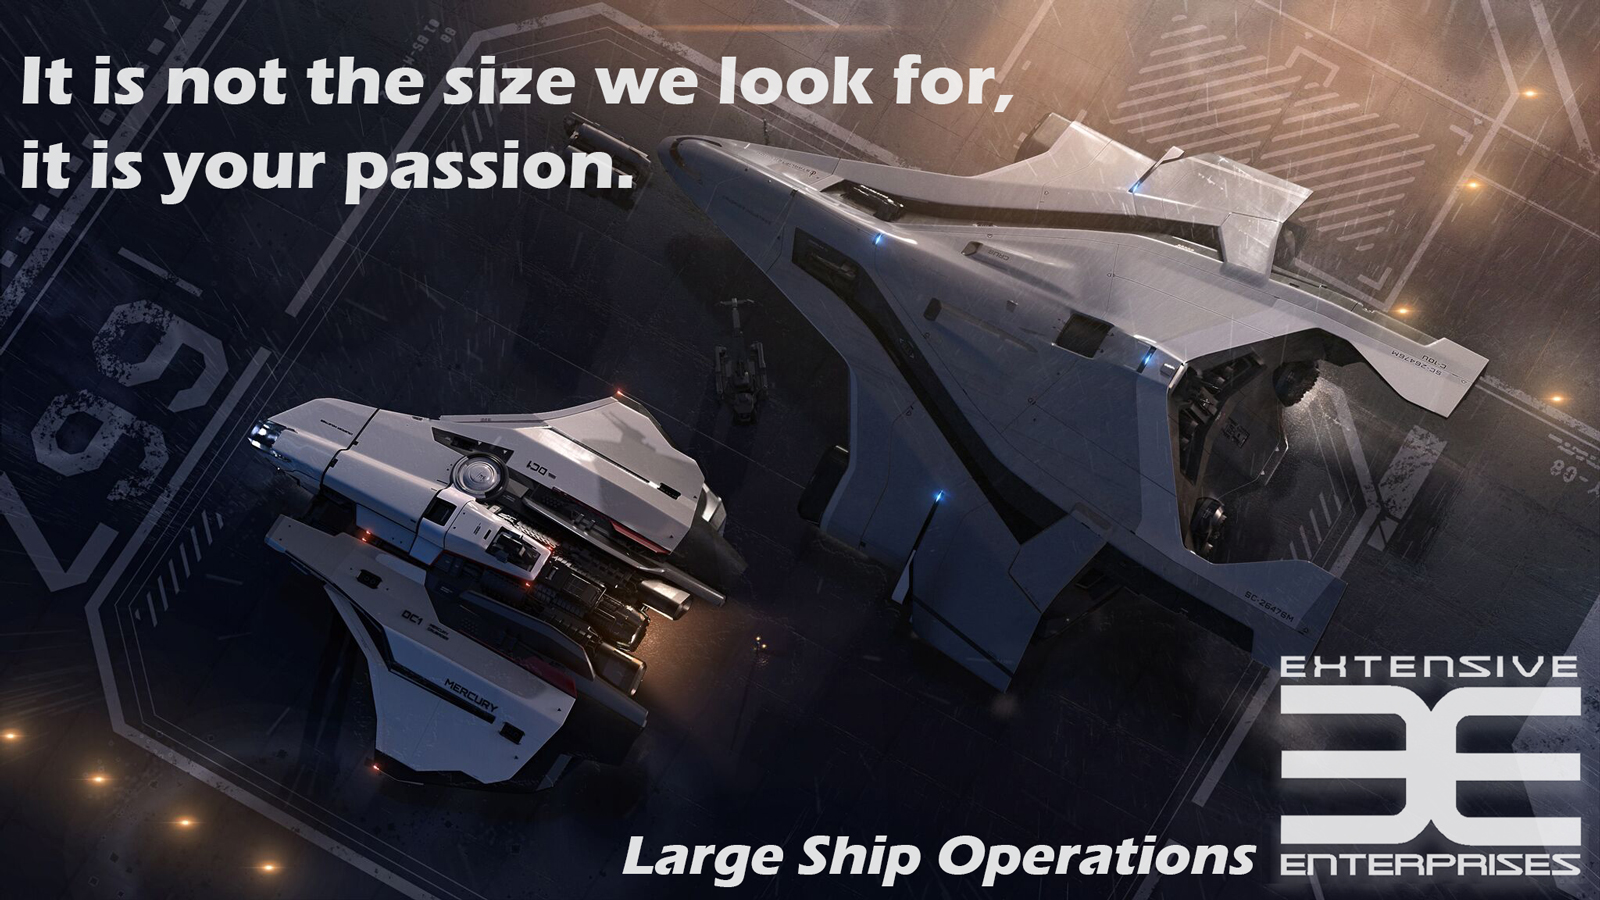 Size-and-Passion-Large.jpg